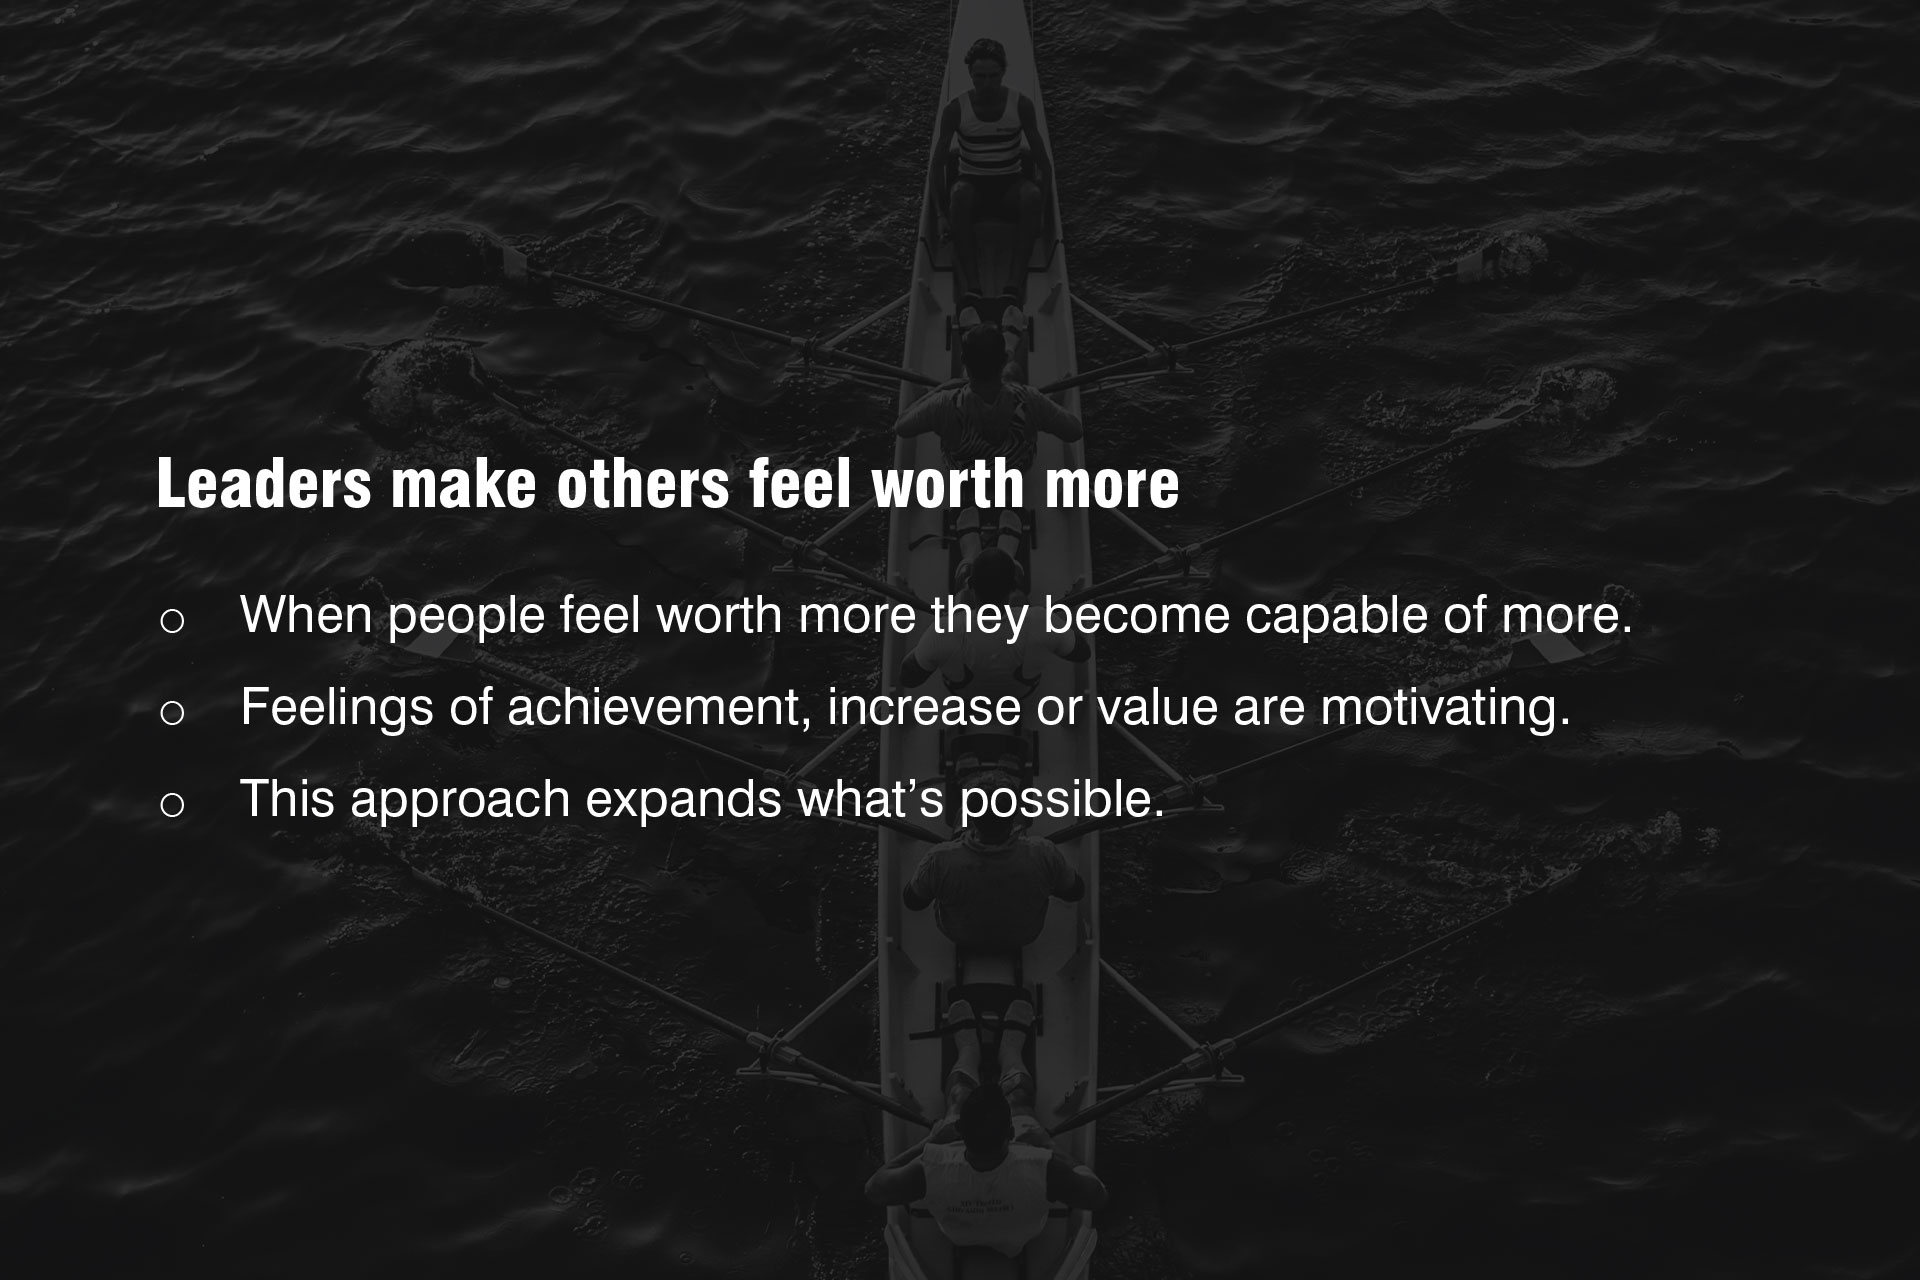 Leaders make others feel worth more. This is the difference. When others feel worth more, they become capable of more. When people feel worth more, they feel a sense of achievement, increase or value they will be more motivated. When people feel worth more this expands the scope of possibilities.